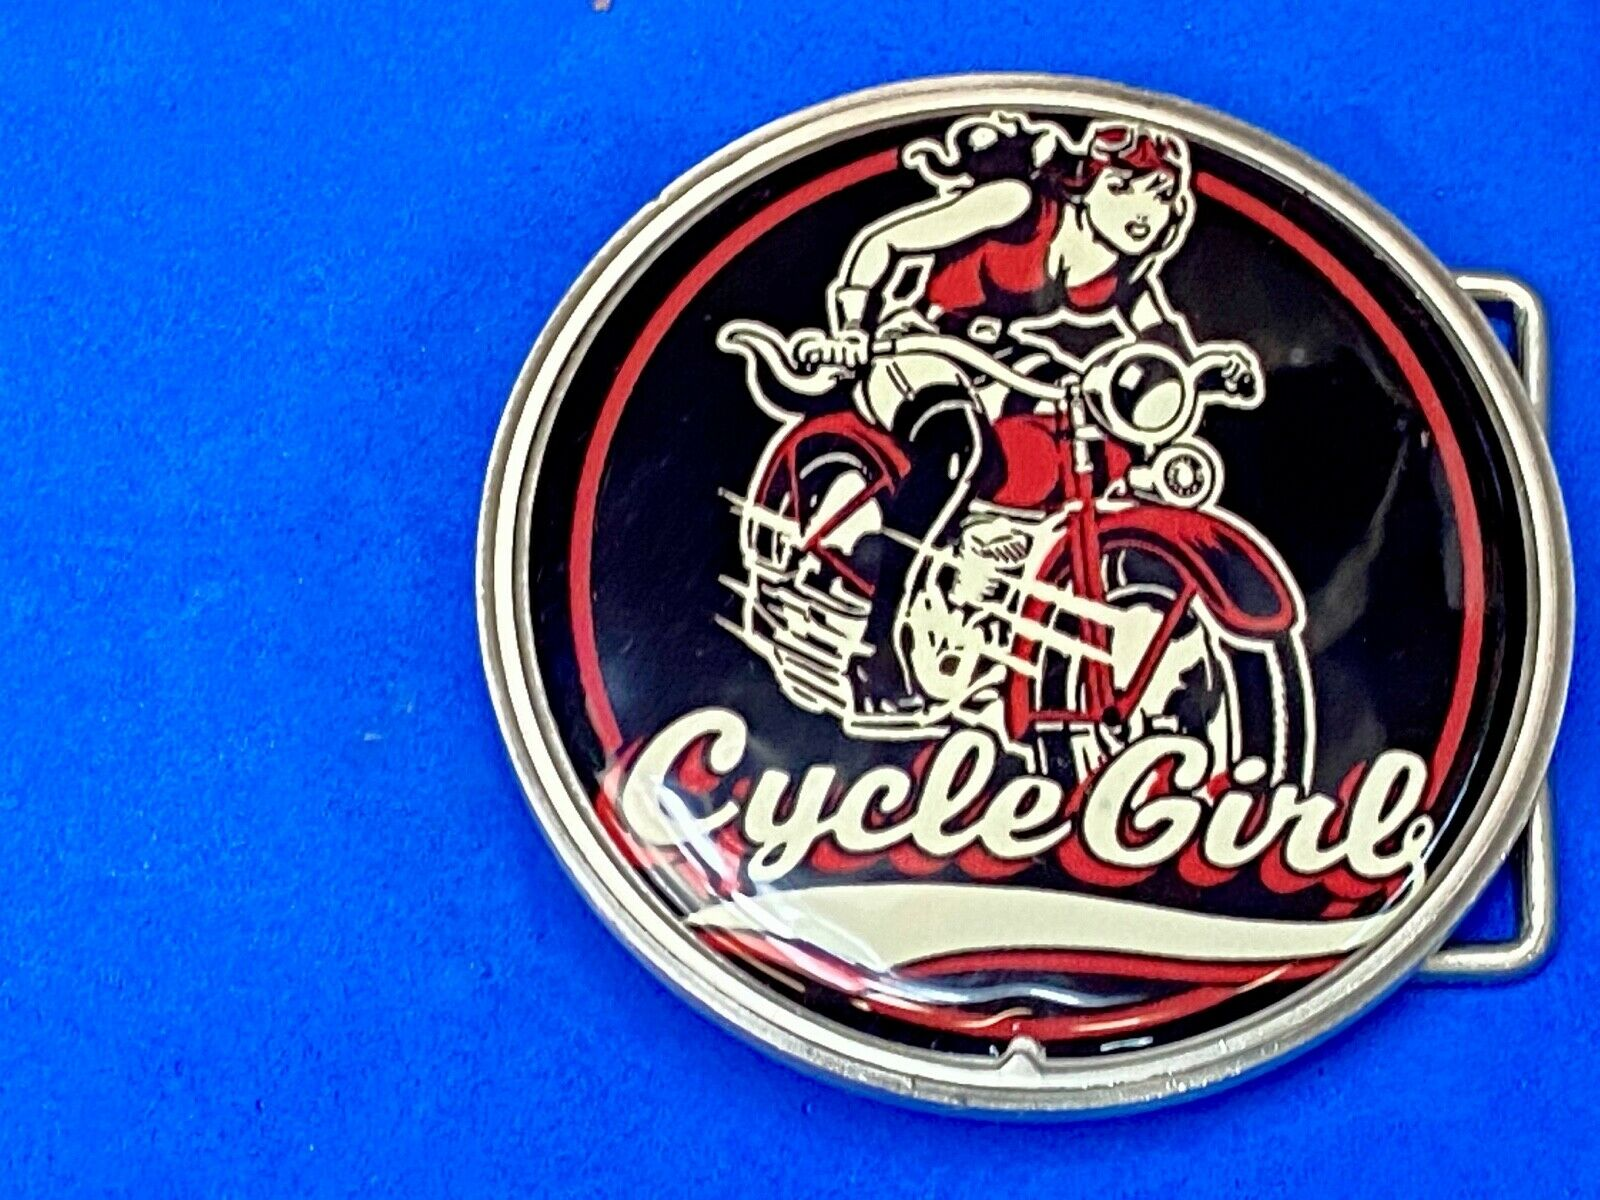 Cycle girls round motor bike bicycle belt buckle by retro a go go